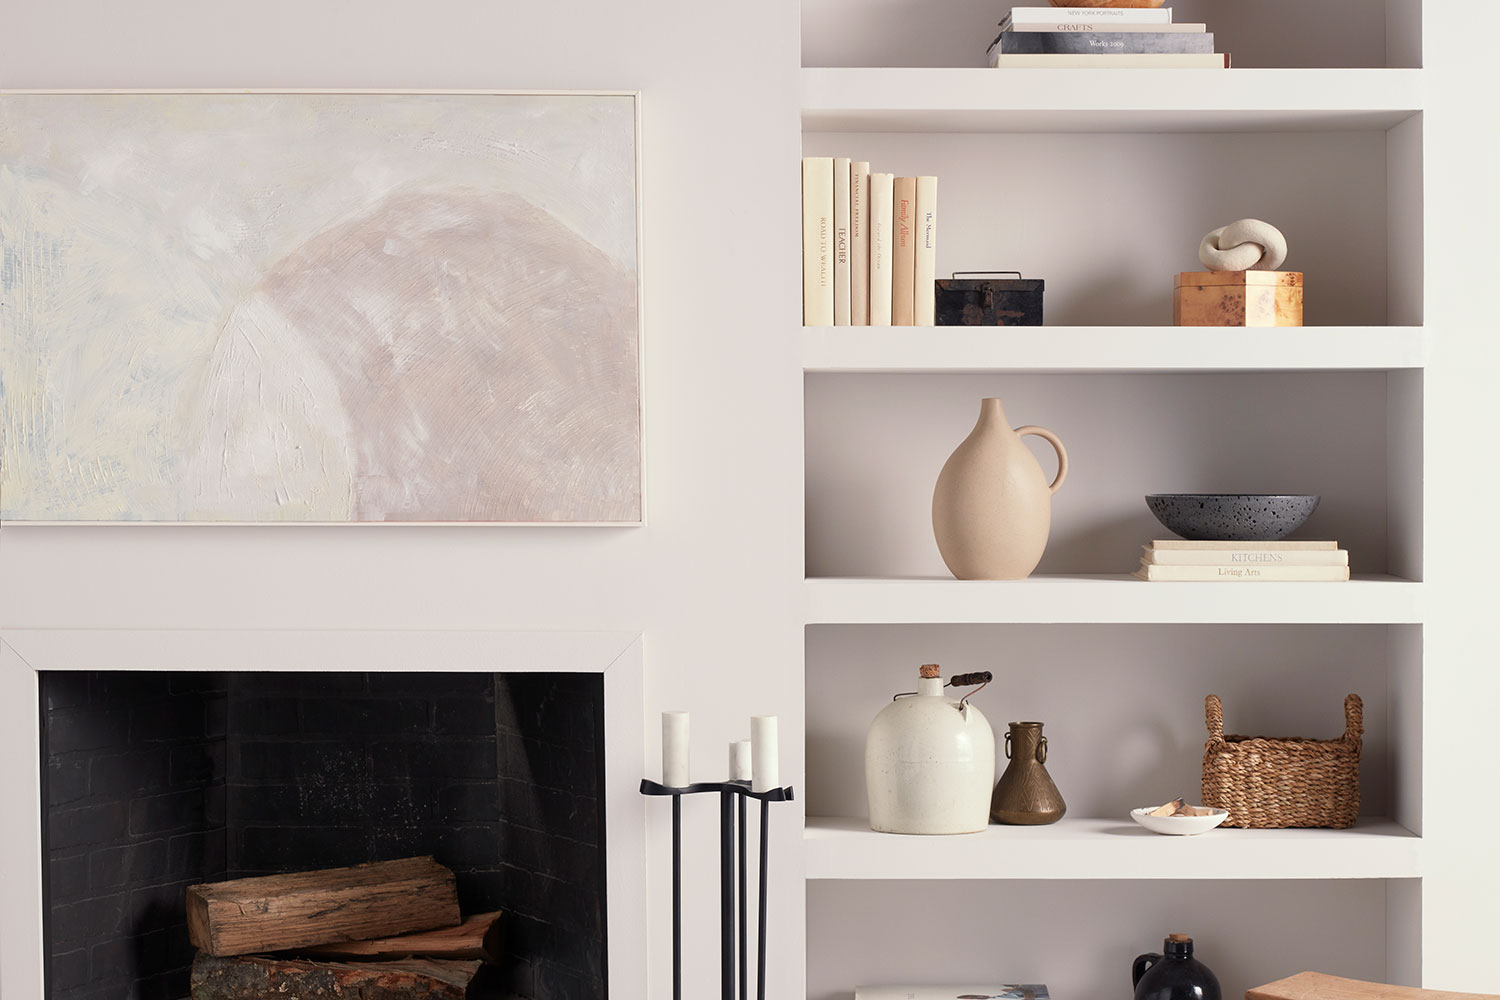 Eider White SW 7014 walls with minimal fireplace and built in shelves decorated with modern vases, art, and books